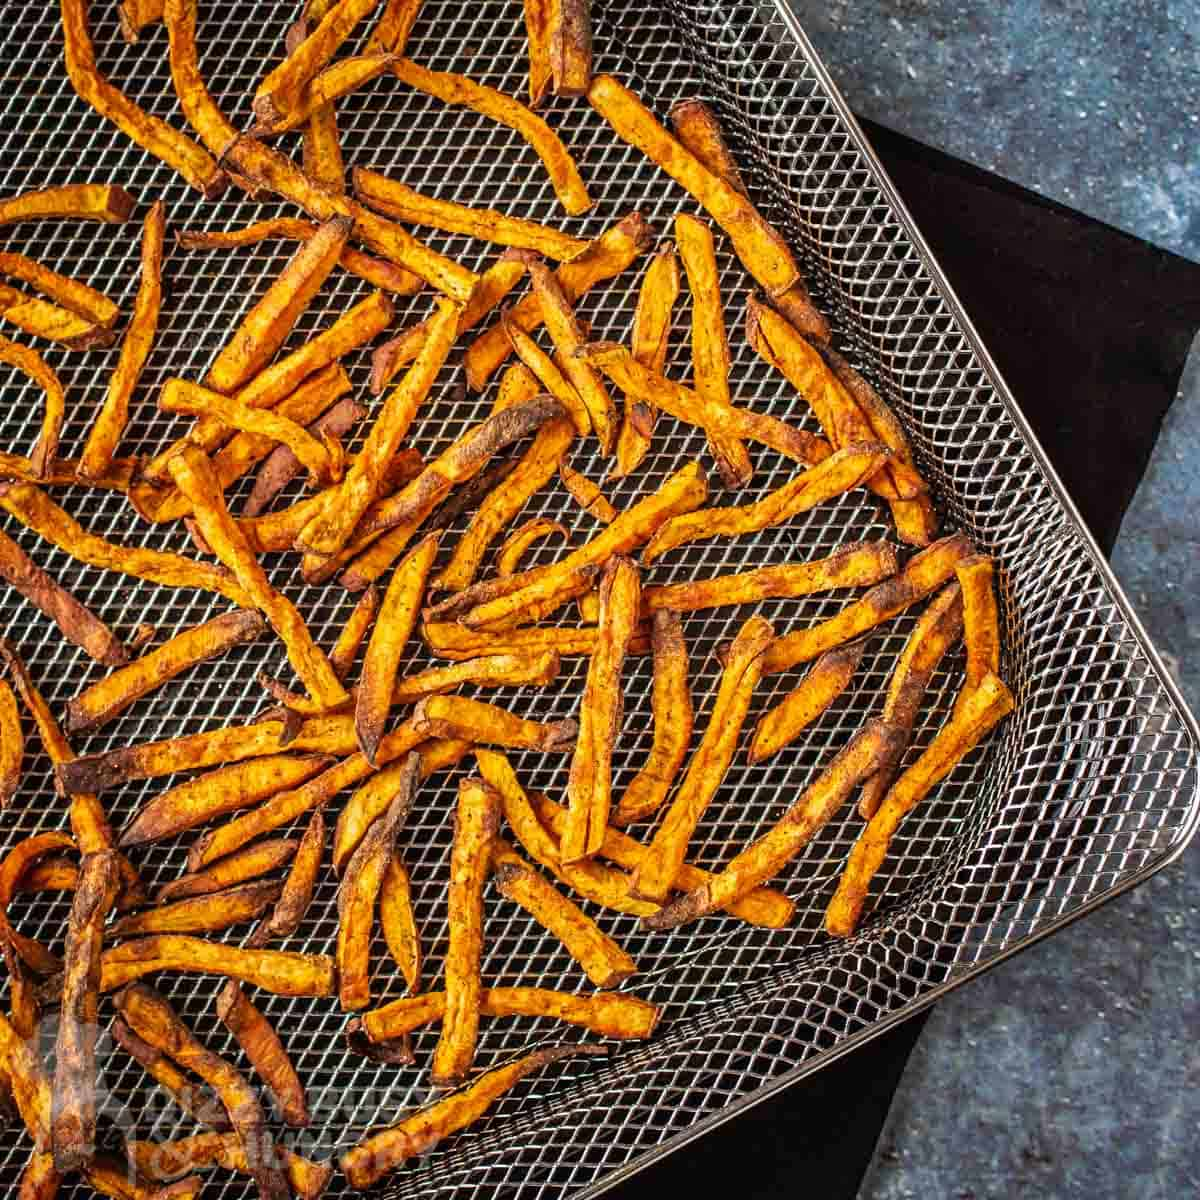 Top down view of air fried sweet potatoes in the air fryer basket sitting on top of a black napkin on a blue speckled surface.